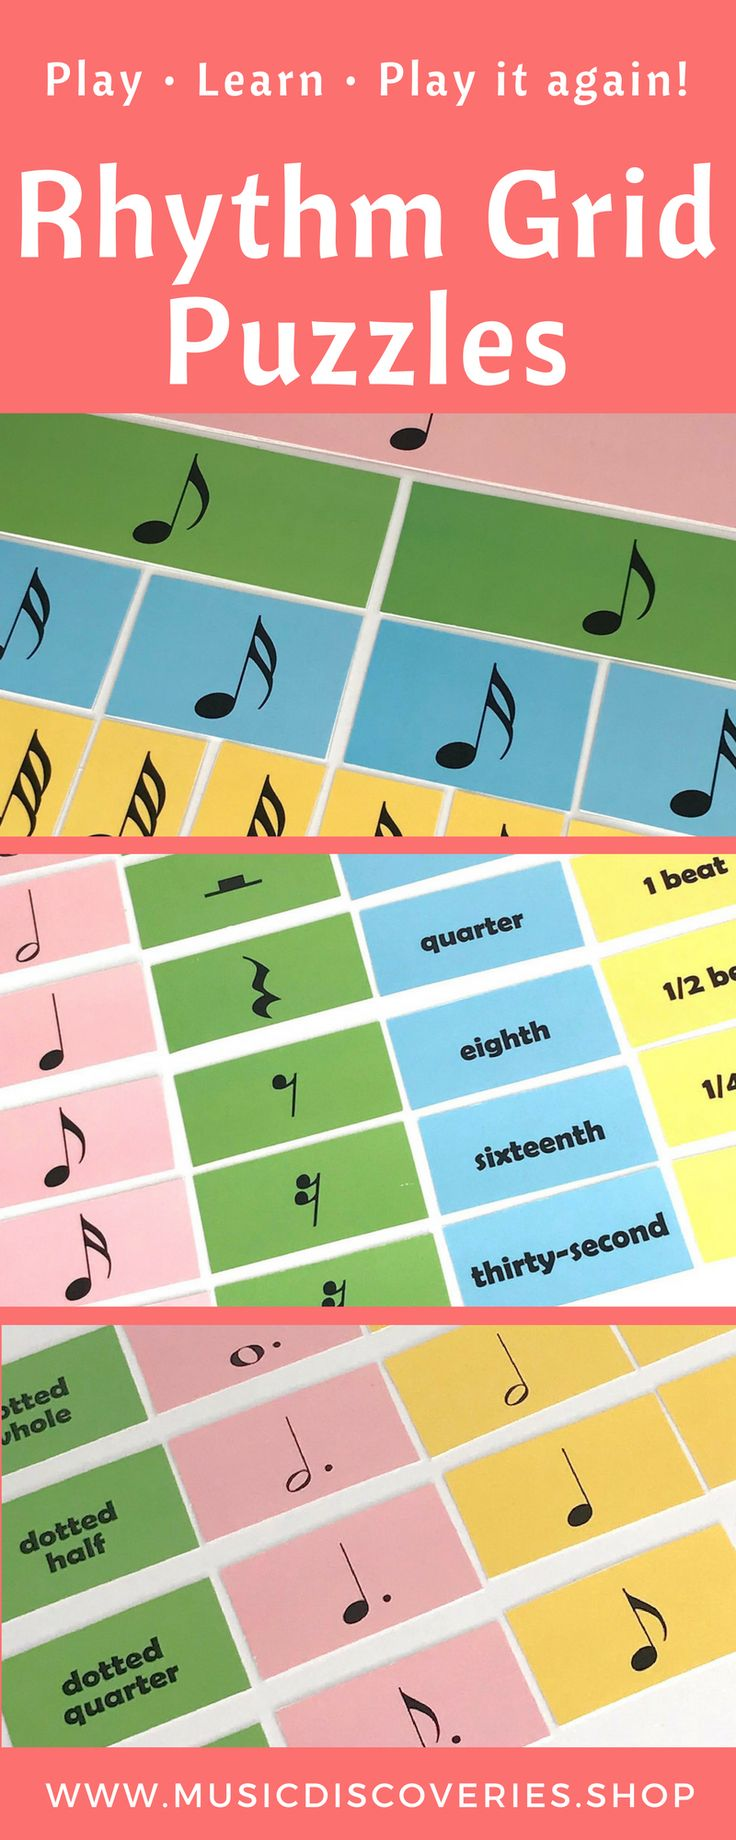 Use the Rhythm Grid Puzzles to help your students develop a solid understanding of note and rest values. #pianoteaching #musiceducation